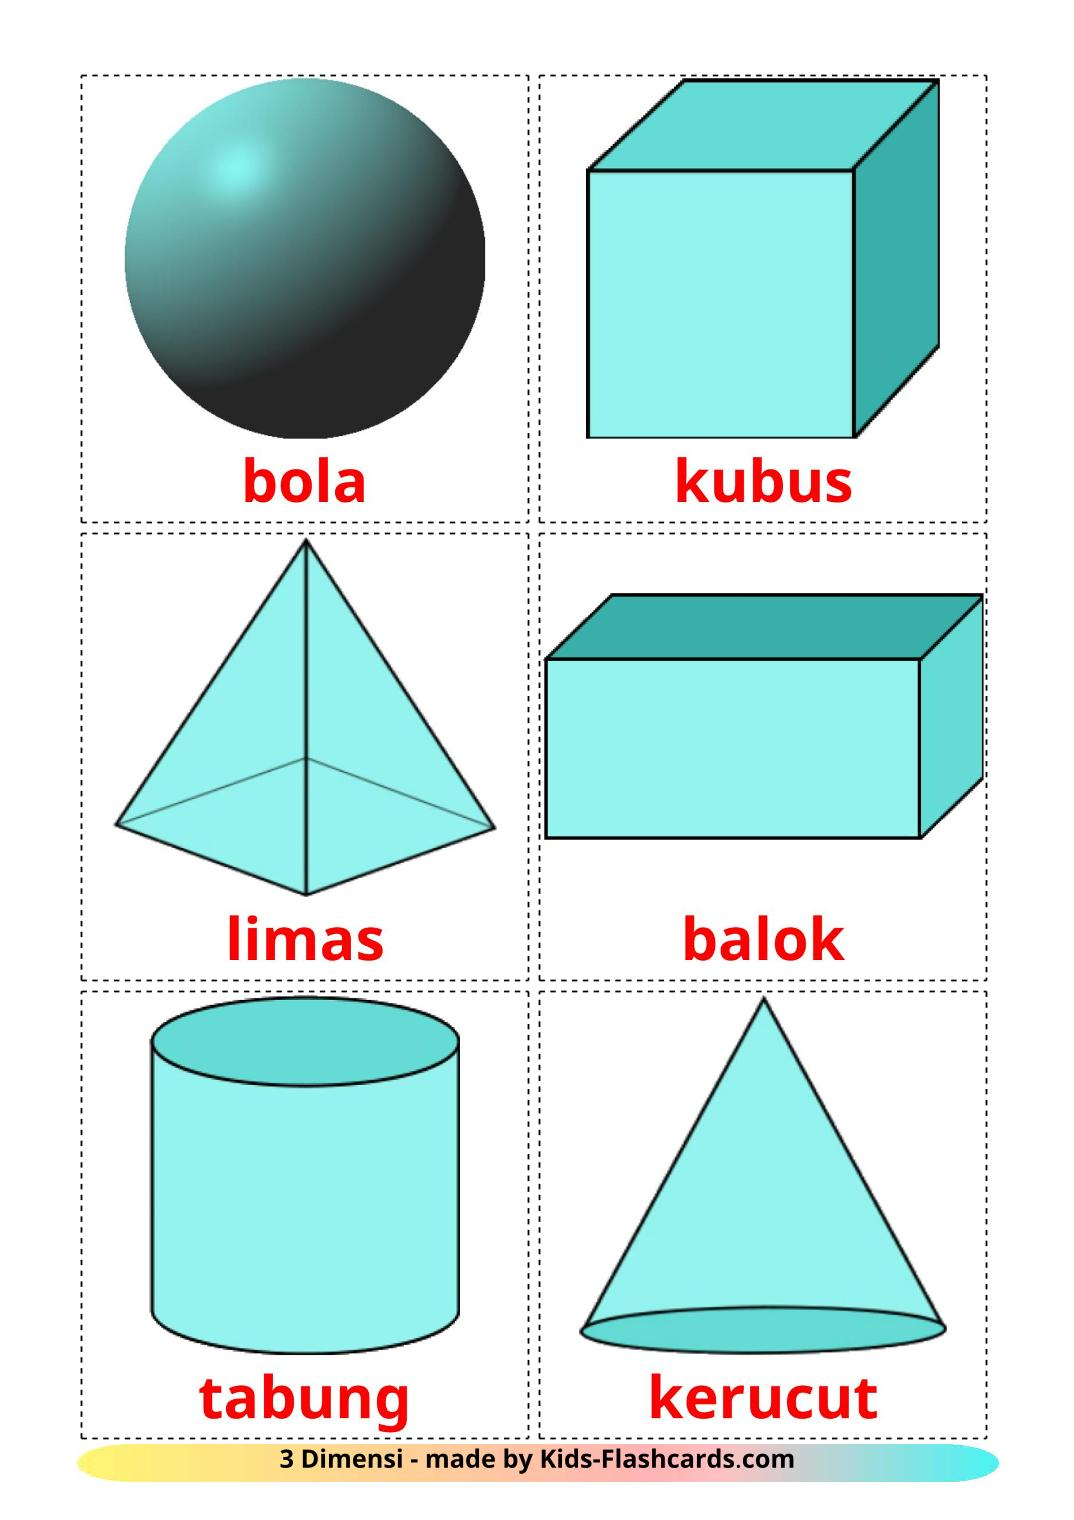 3D Shapes - 17 Free Printable indonesian Flashcards